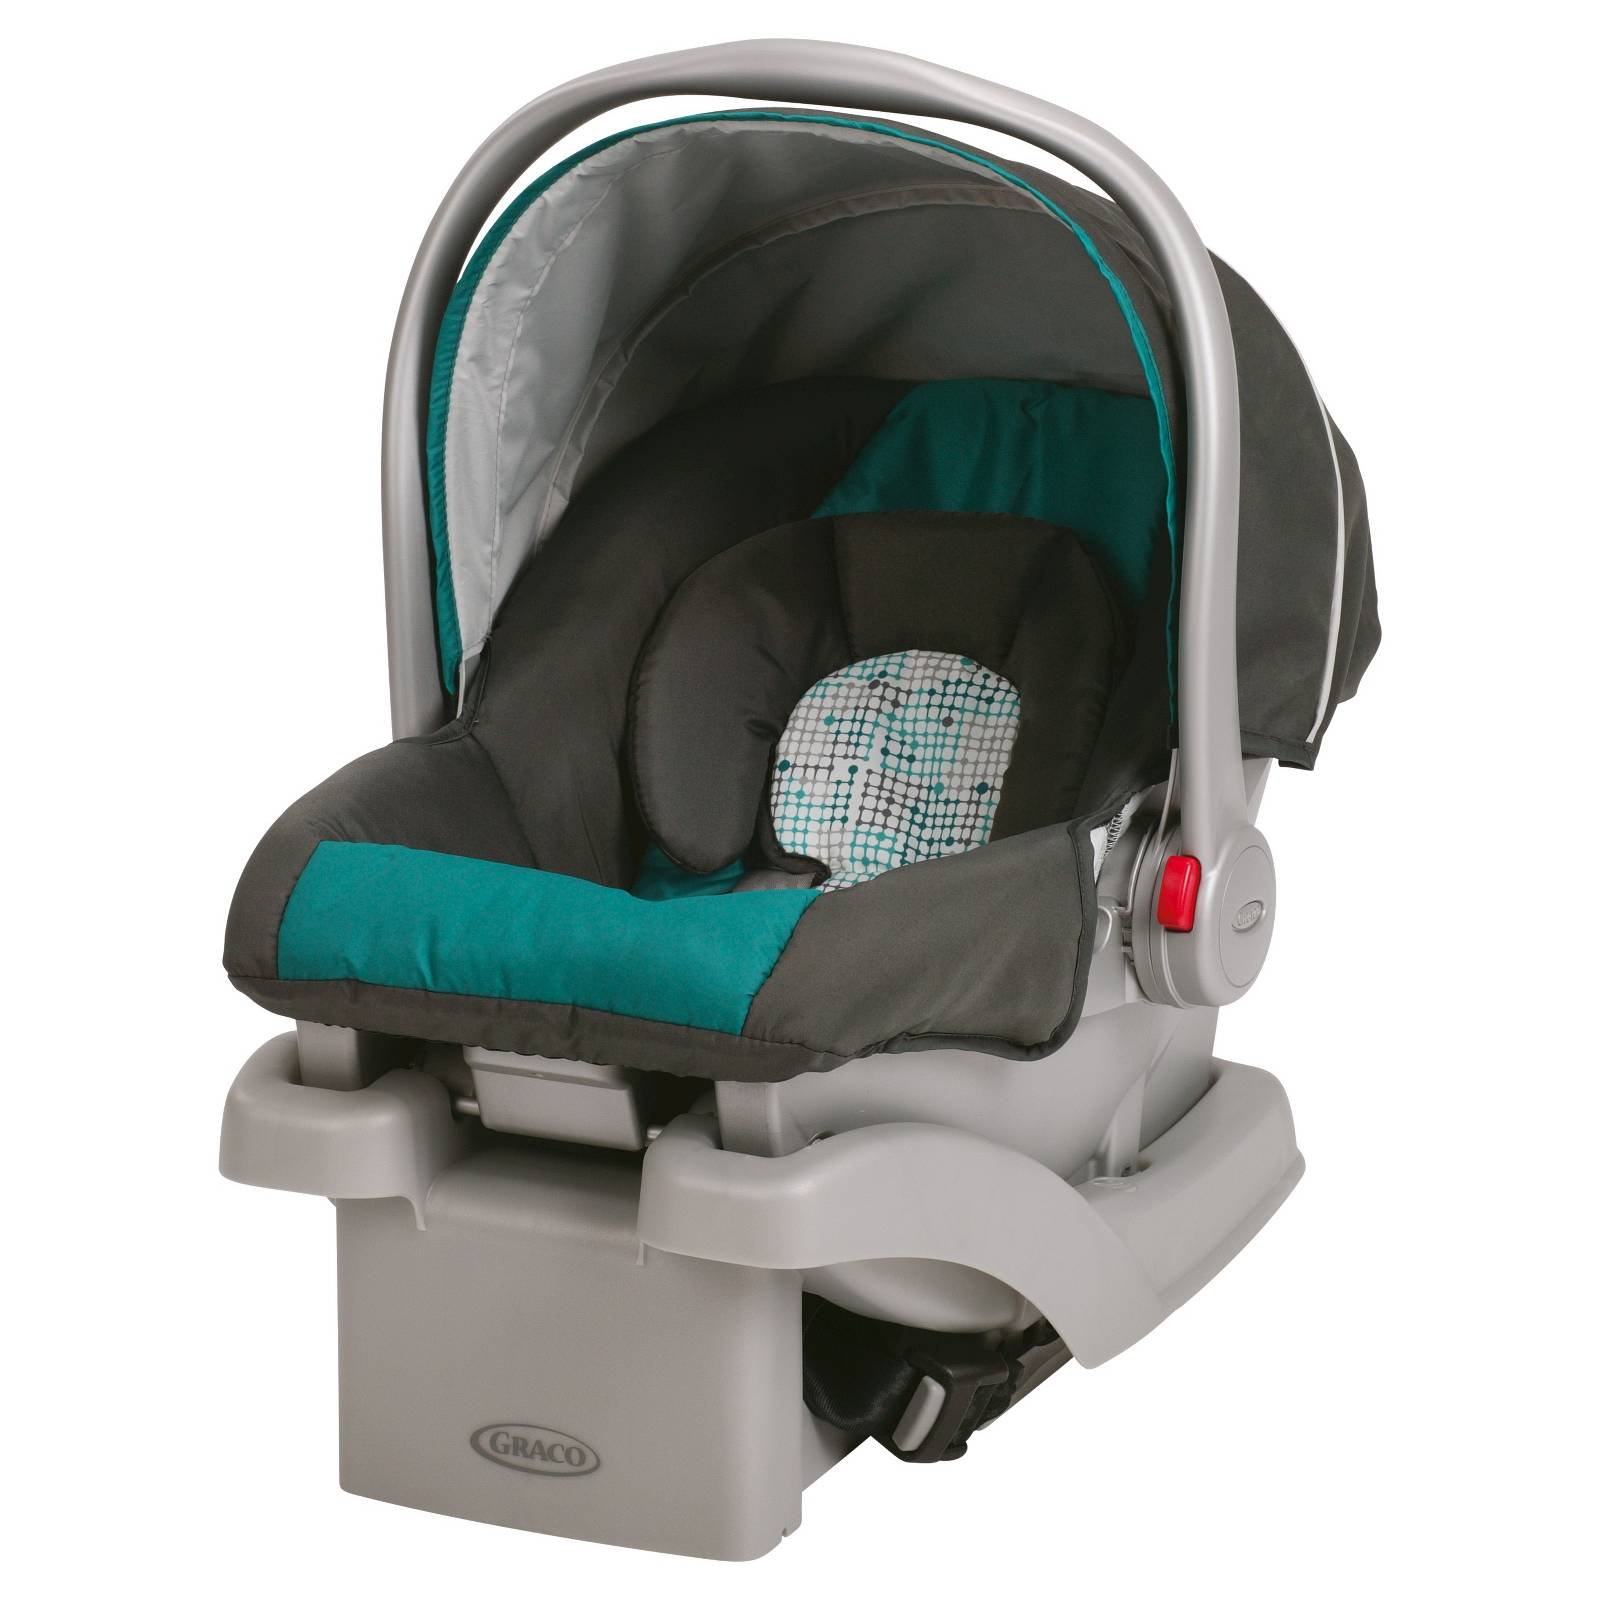 Infant Carrier Kmart Best Twin Stroller With Car Seat Reviews 2019 Travel